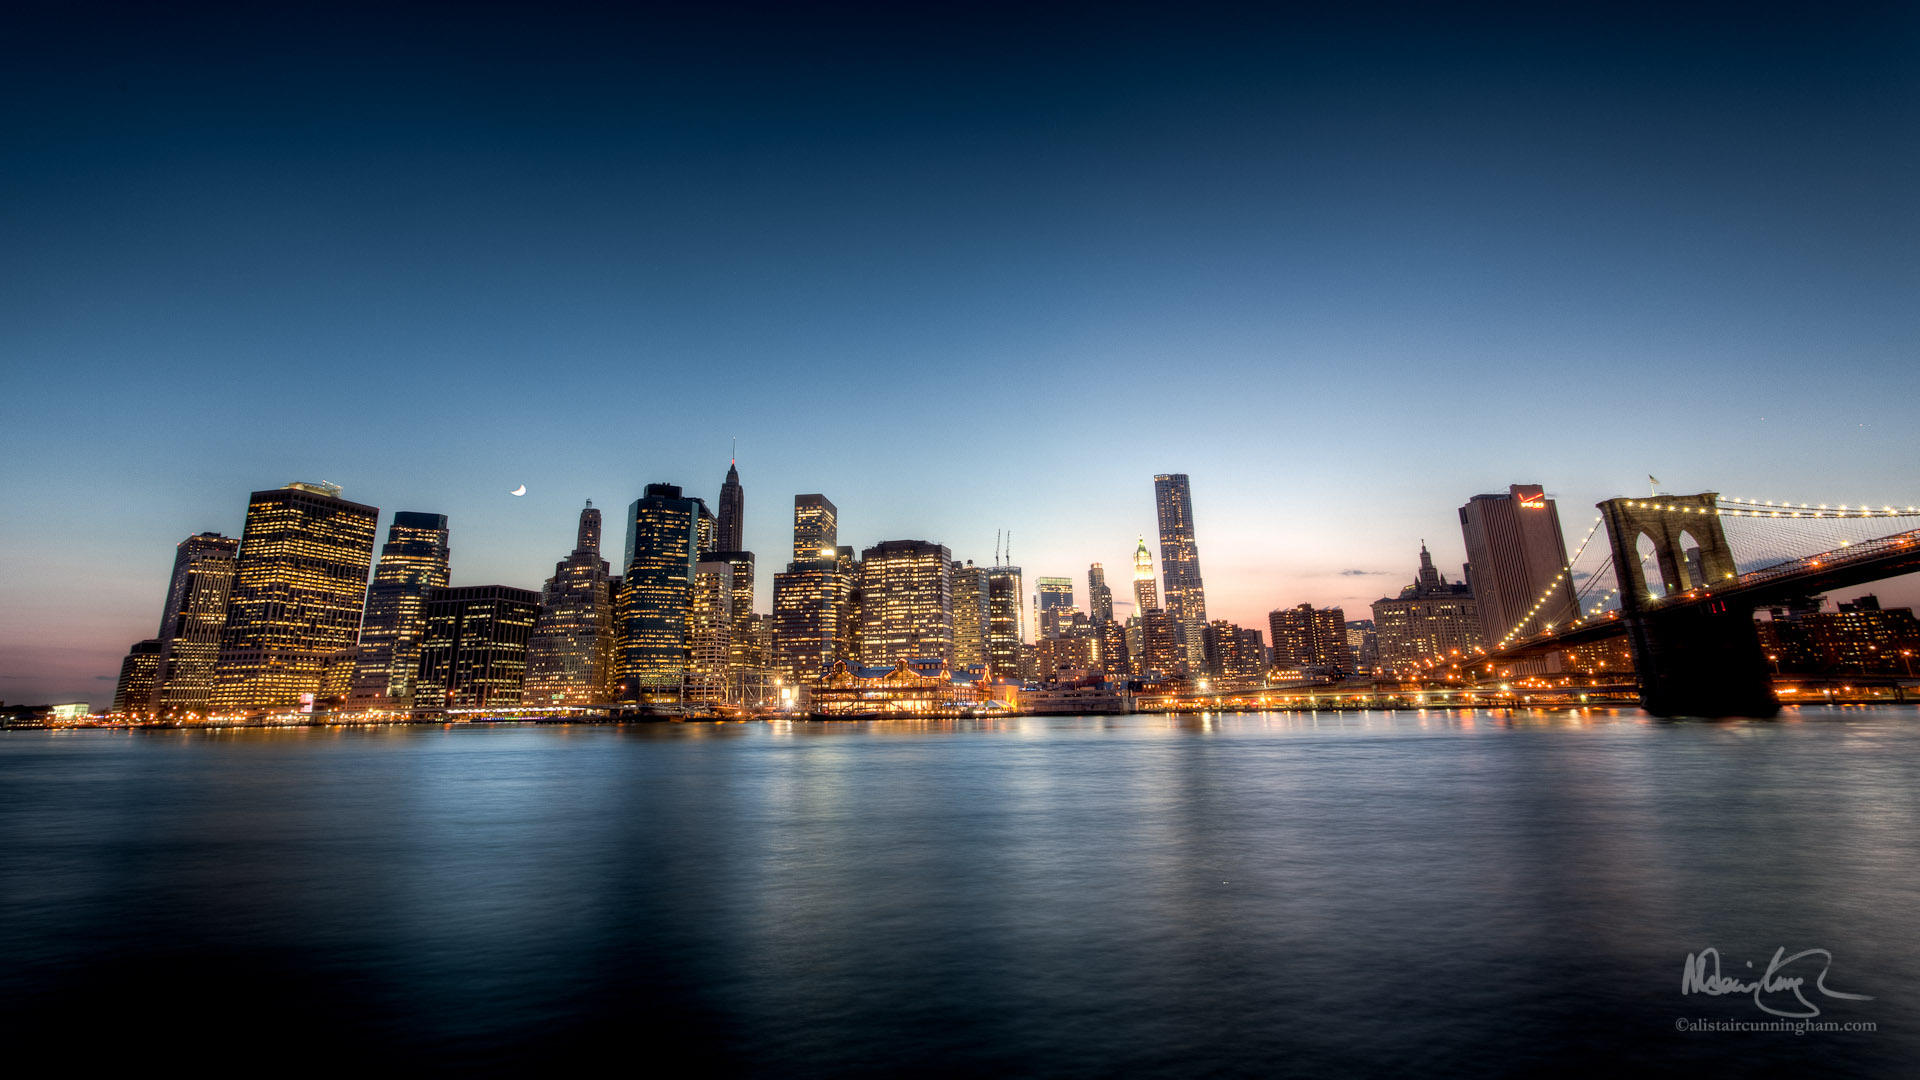 HDR Photograph of the Manhattan skyline